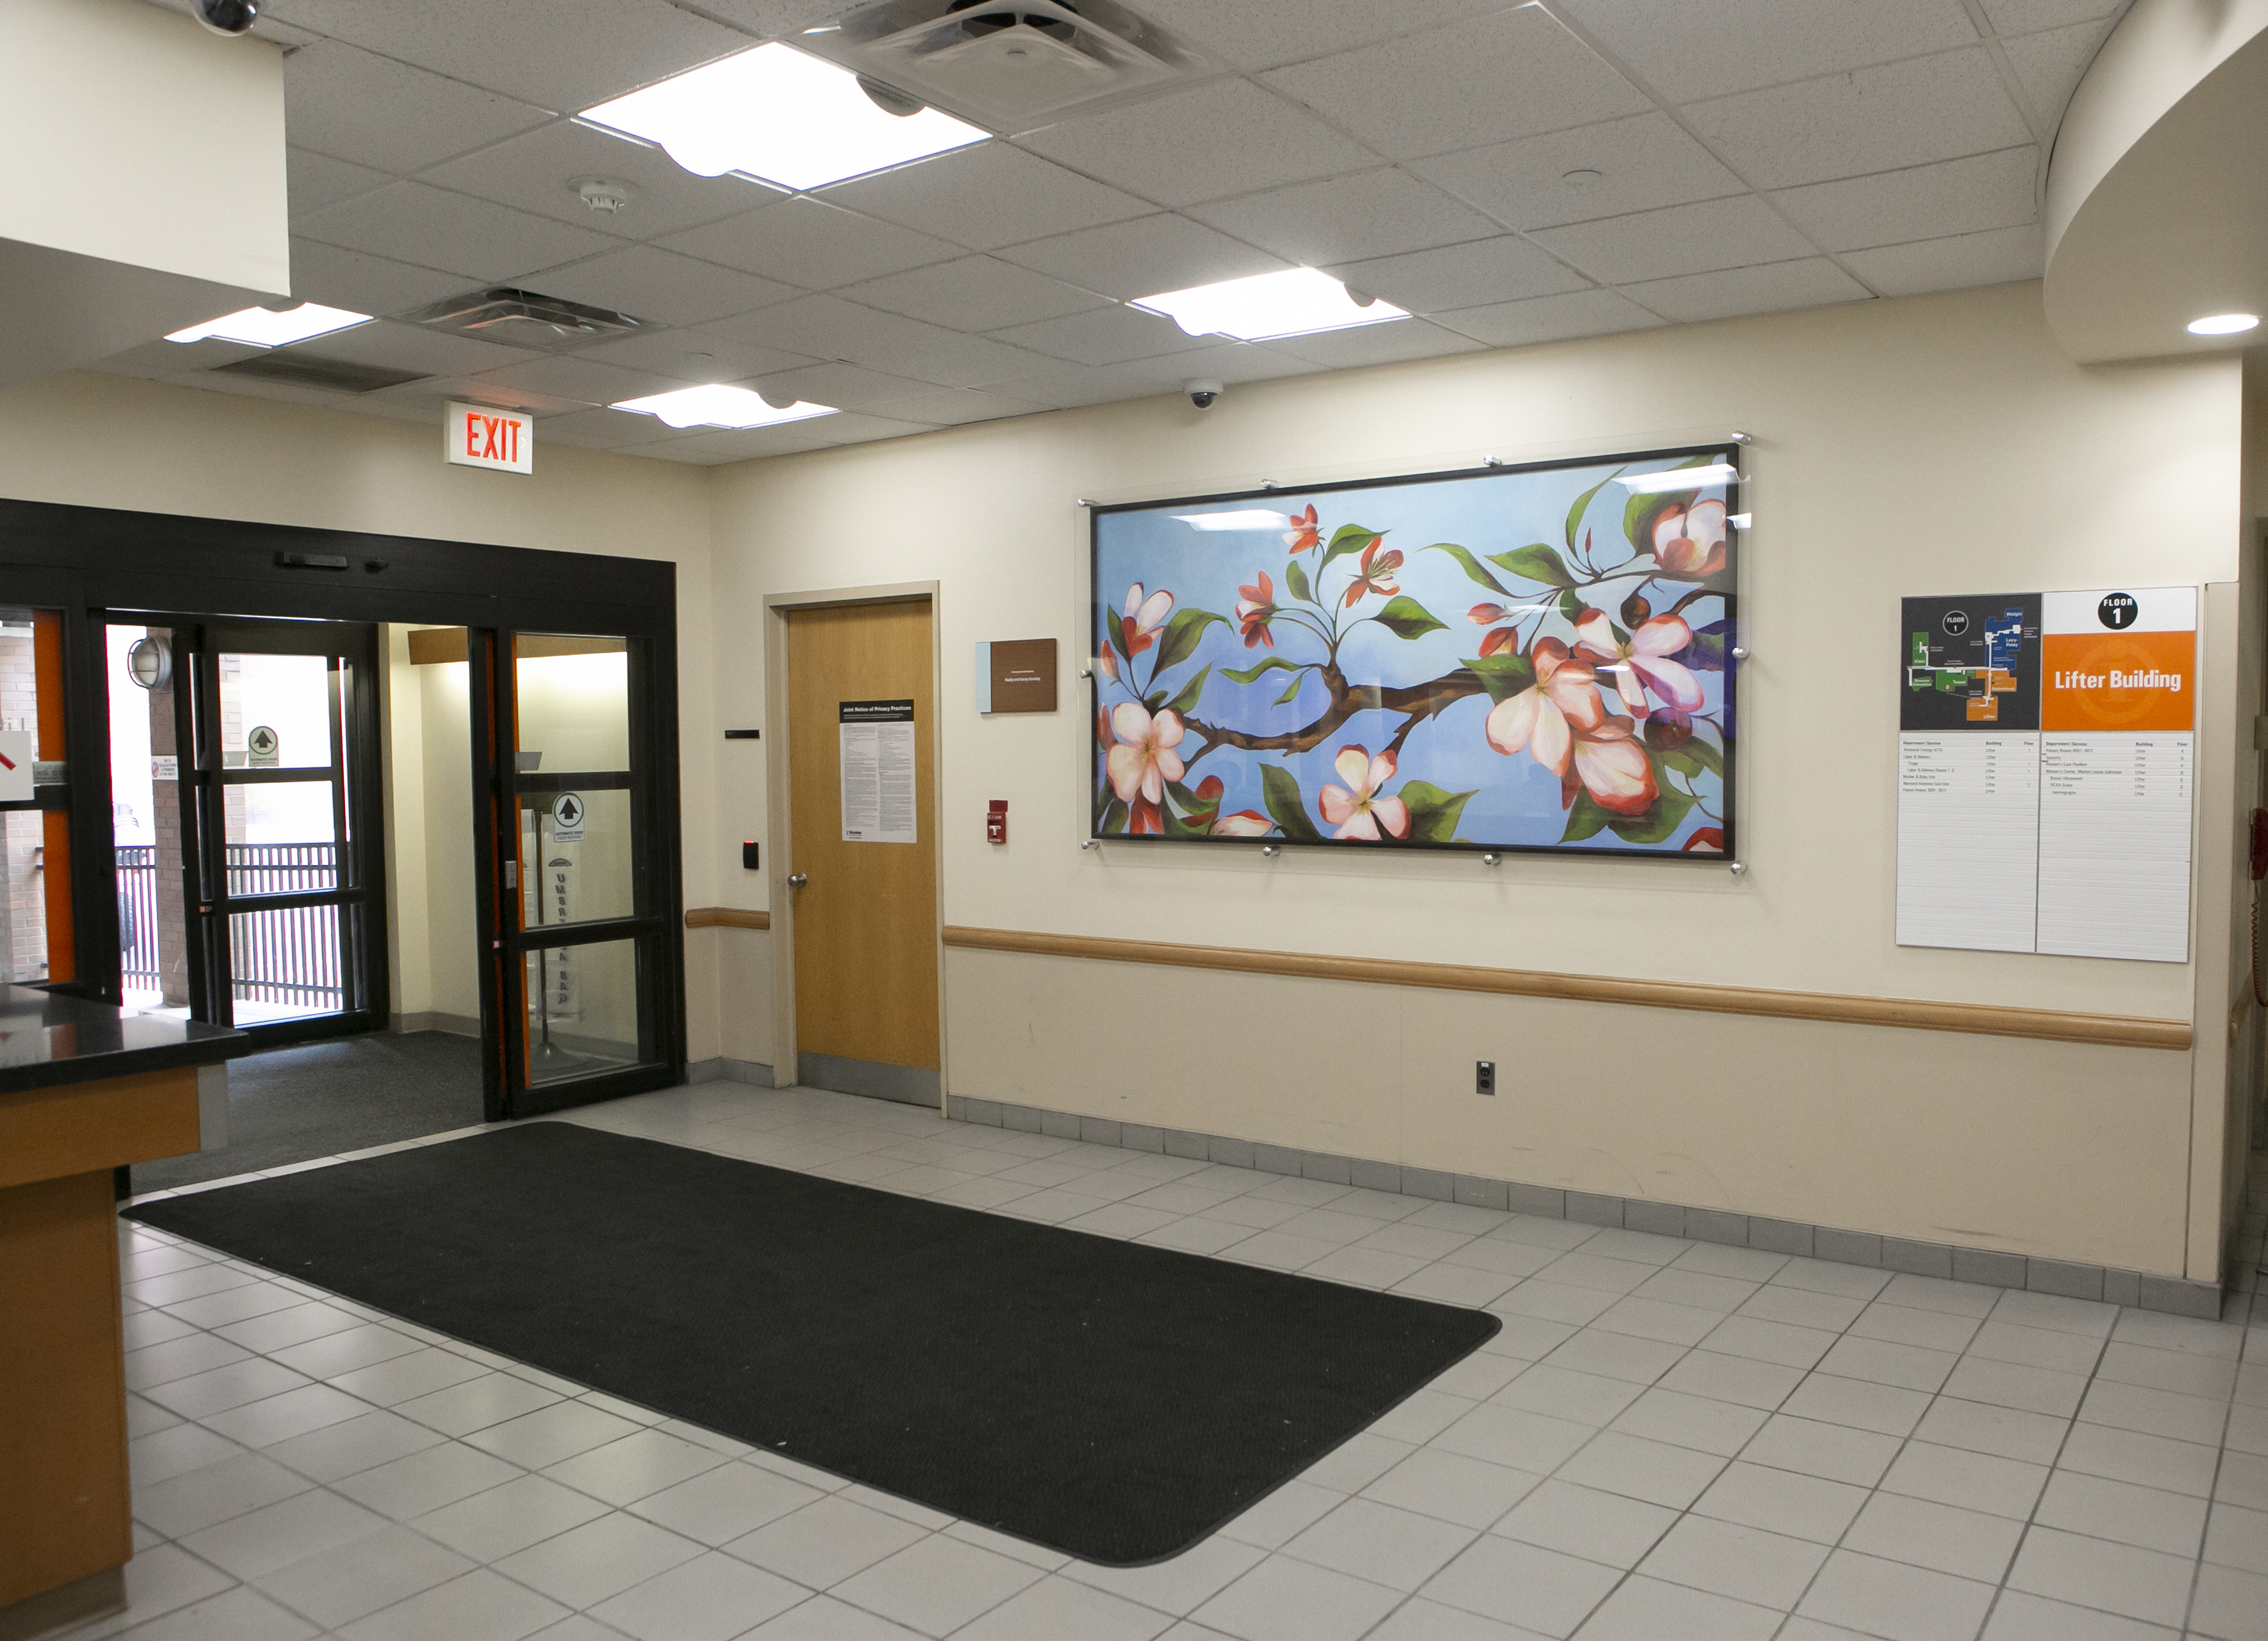 image of Lifter Building lobby